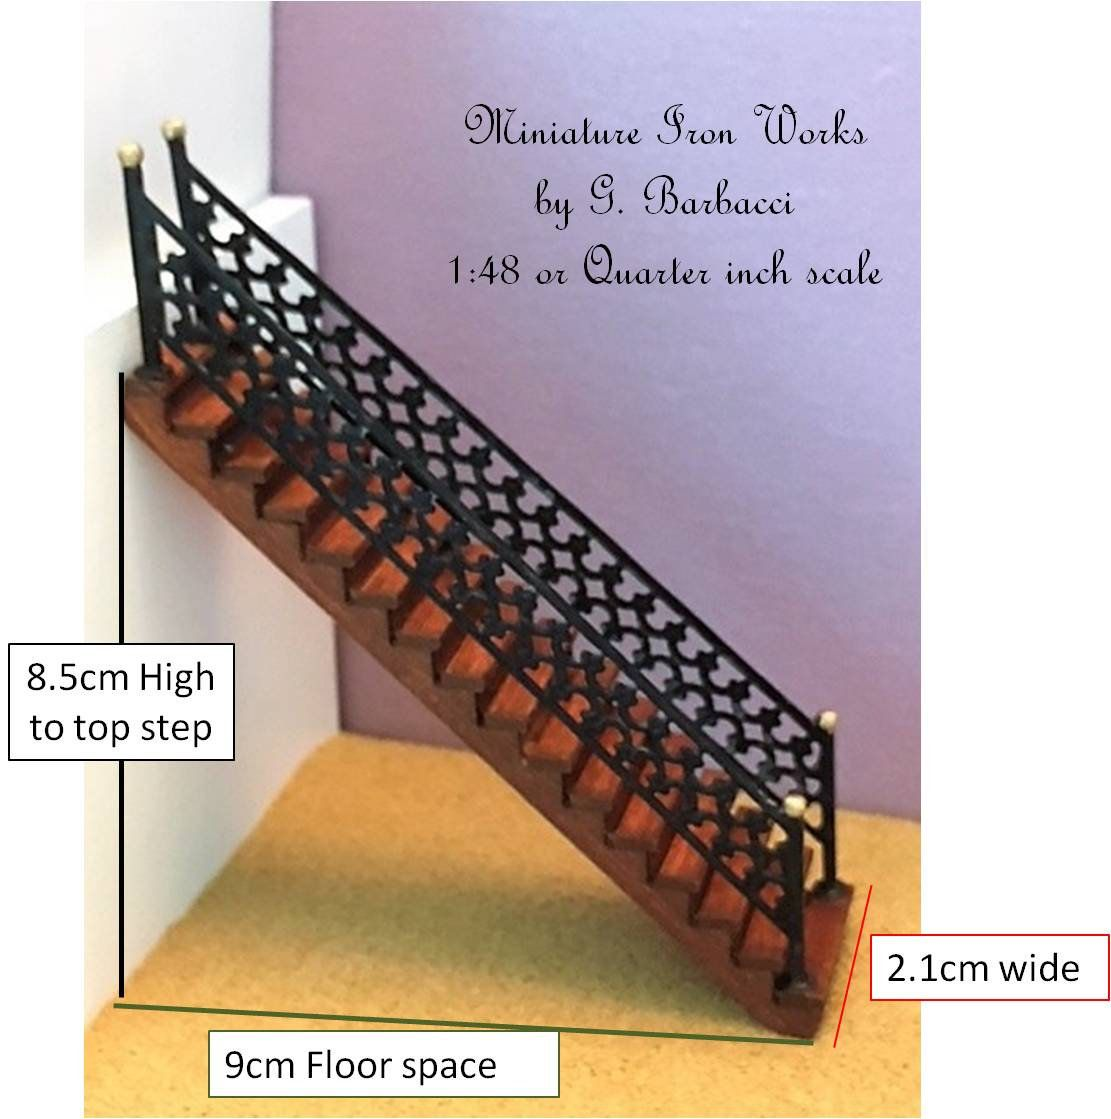 Best Dollhouse Miniature Staircase 1 48 Or Quarter Inch Scale 400 x 300